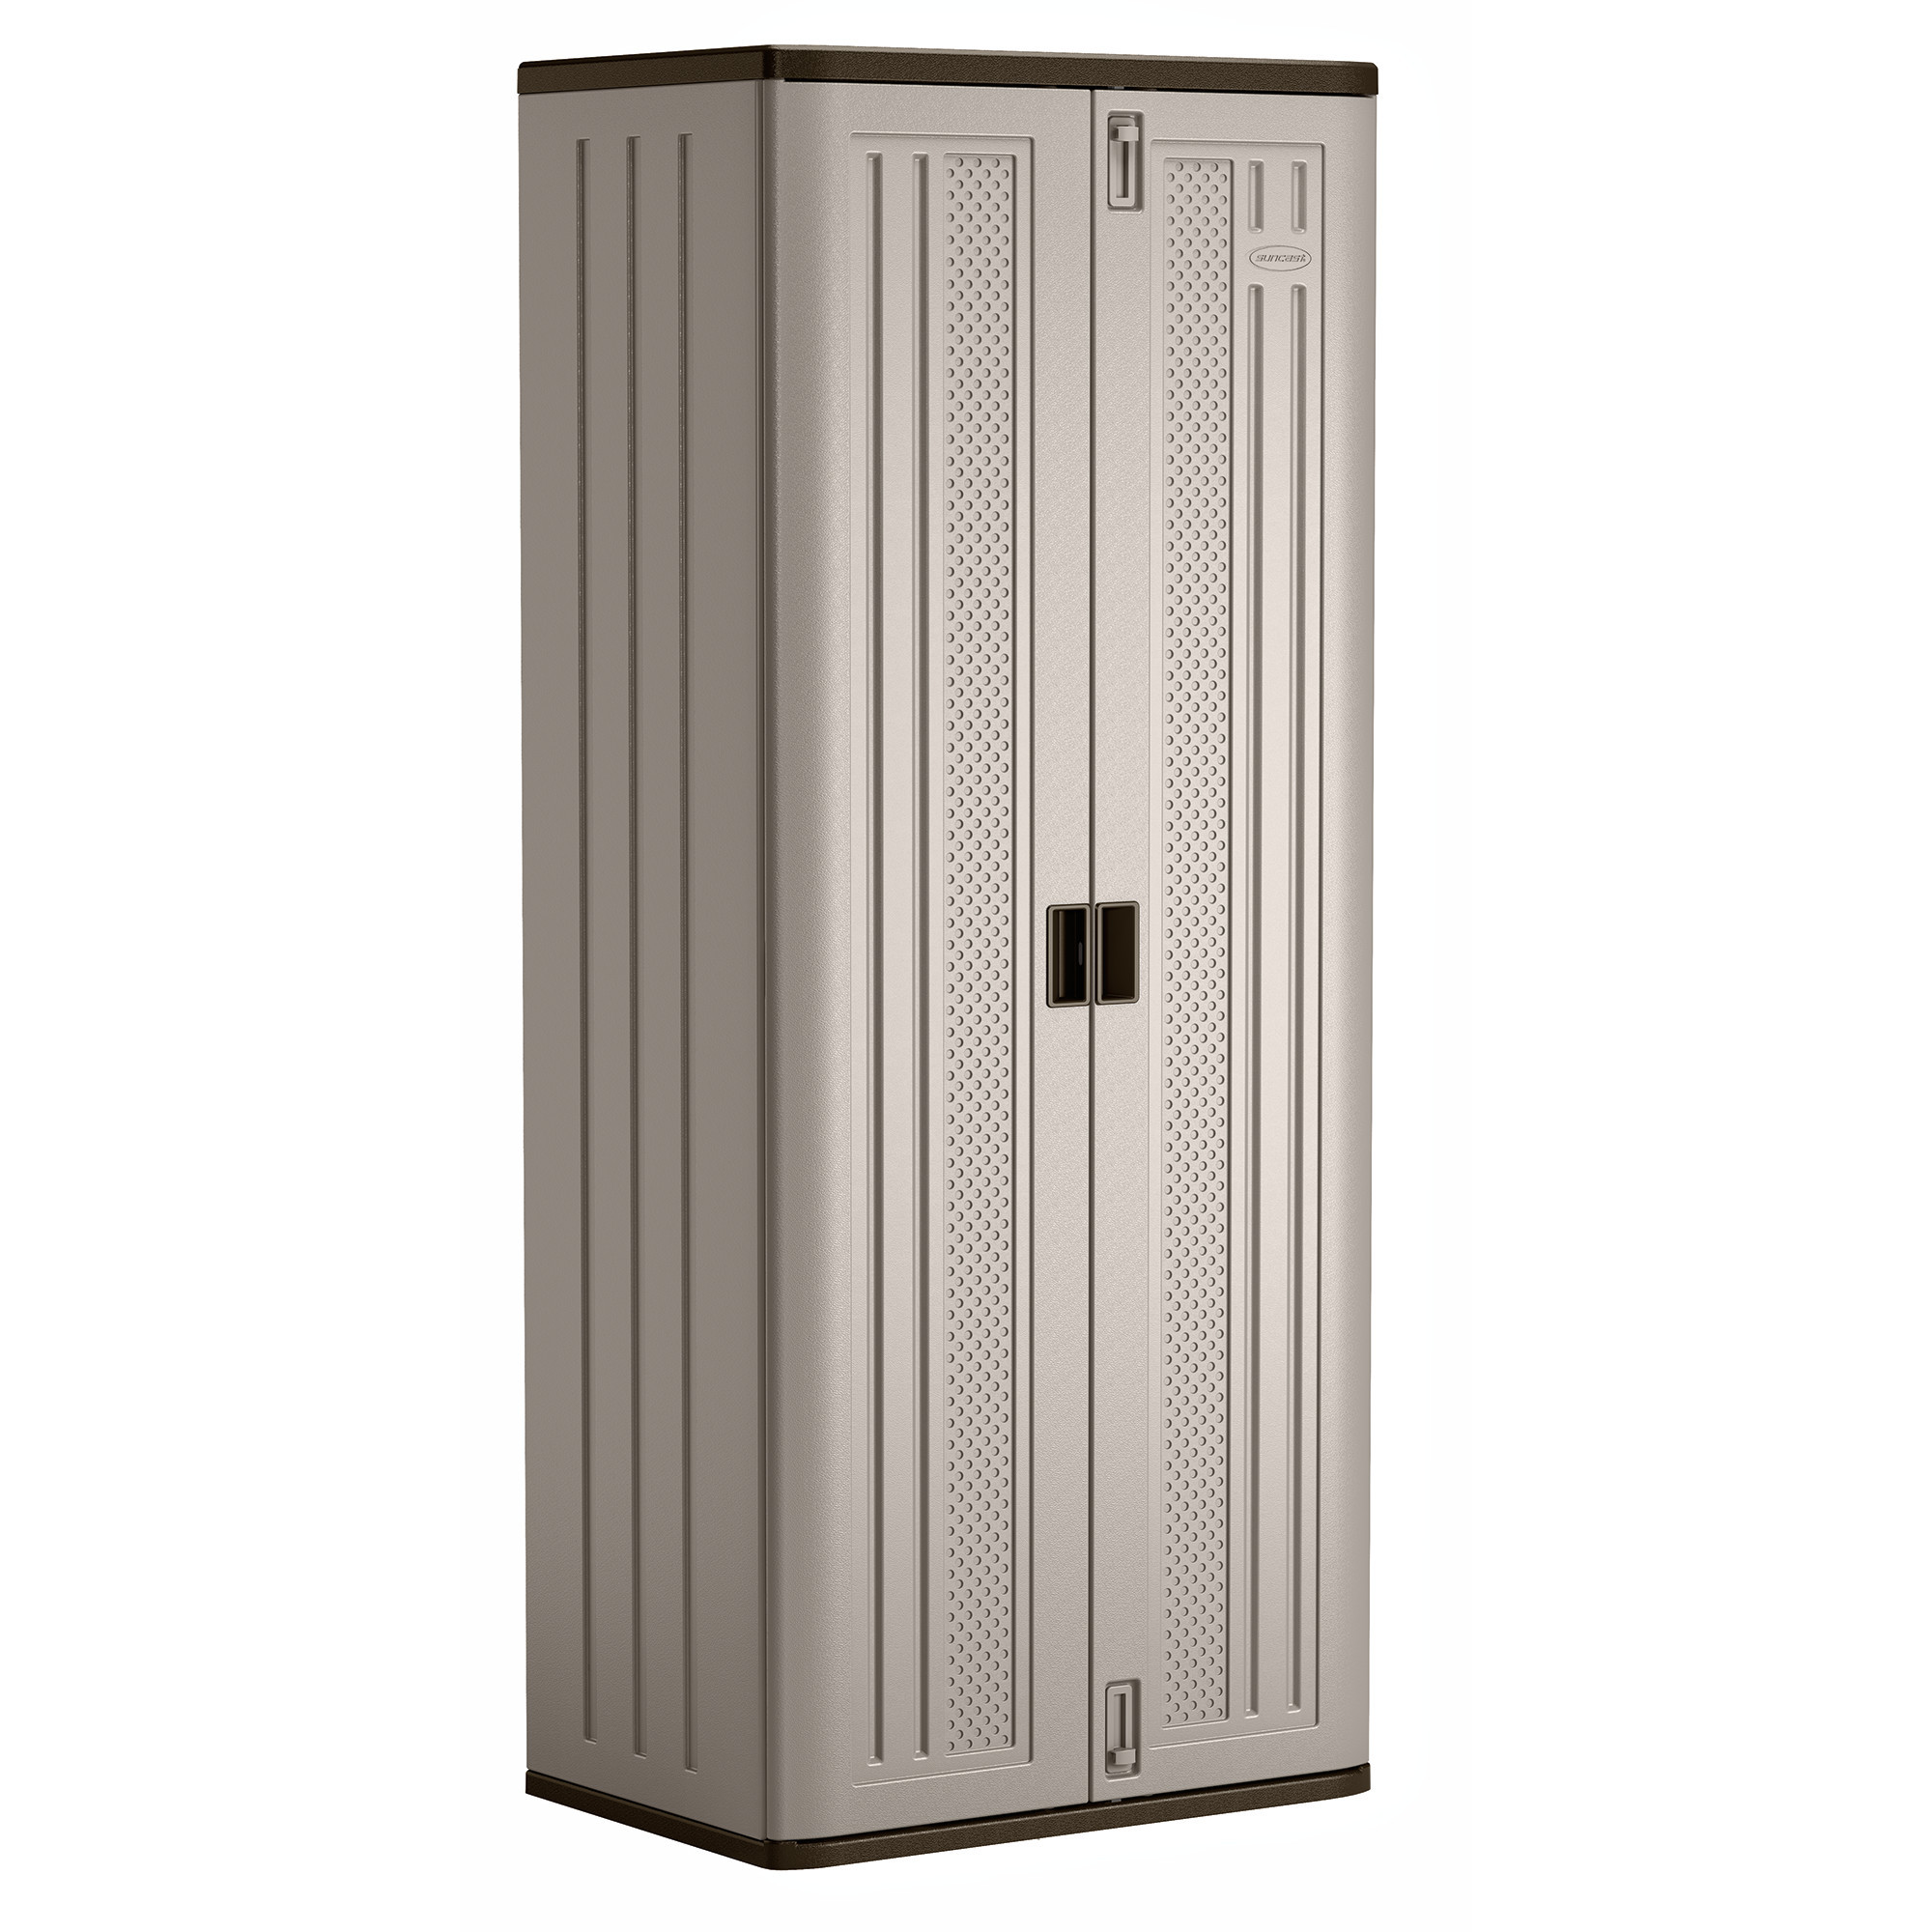 Best ideas about Resin Storage Cabinet . Save or Pin Suncast Tall Resin Storage Cabinet BMC7200 Walmart Now.